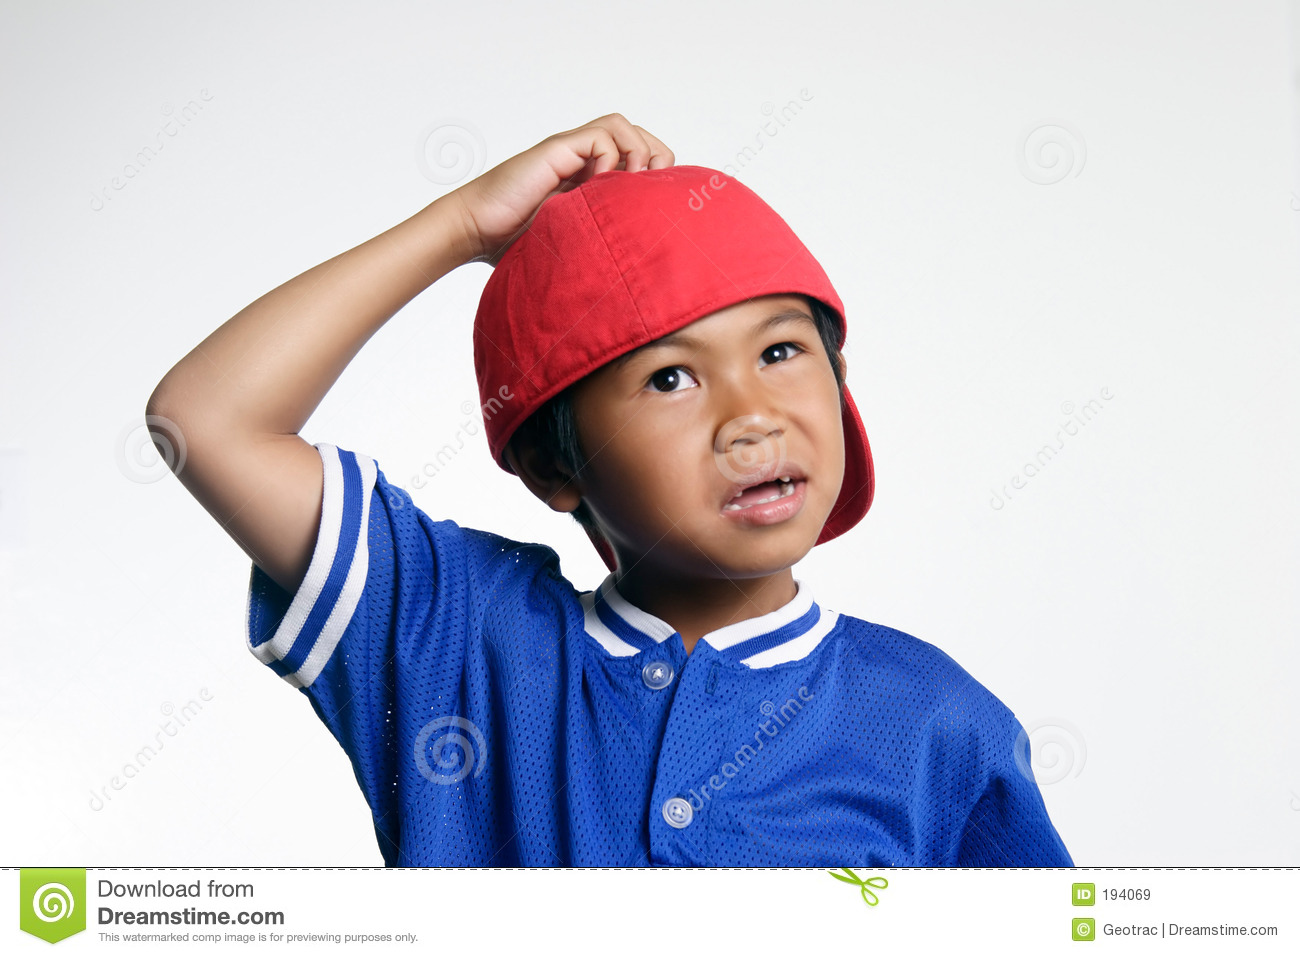 Confused Kid Royalty Free Stock Images - Image: 194069